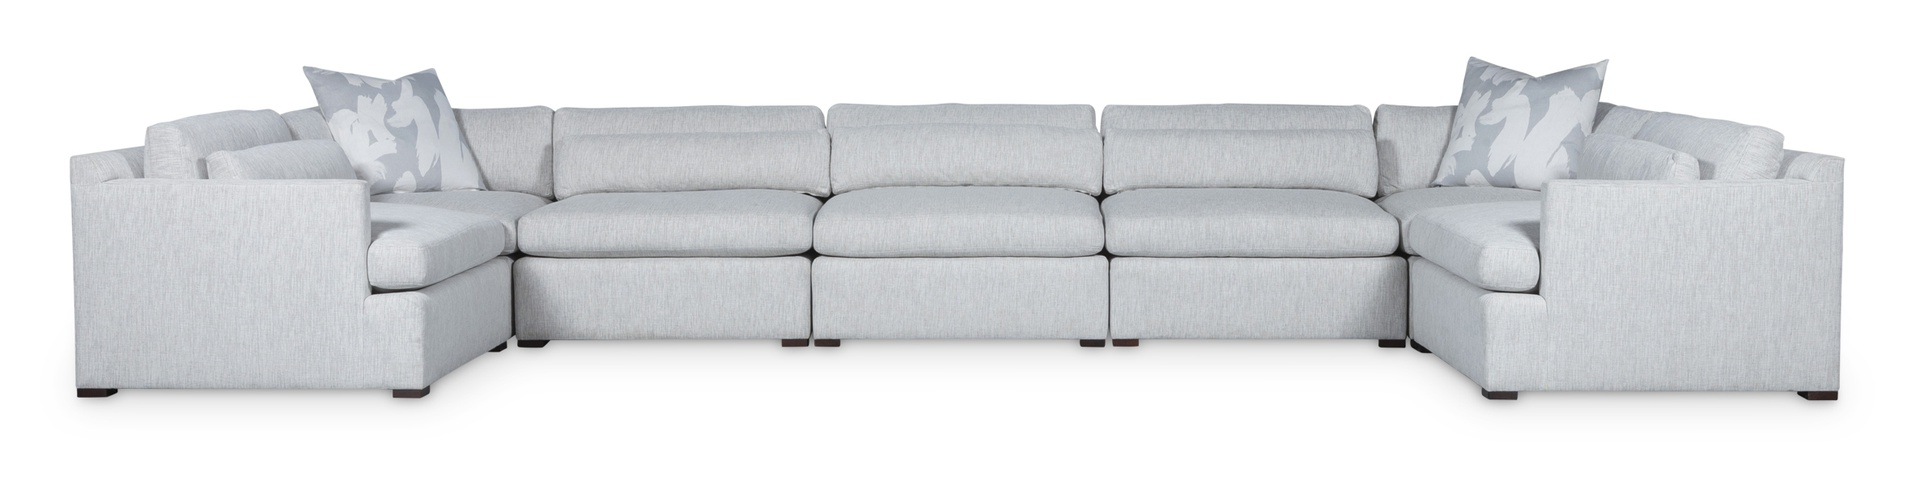 2516 Sectional